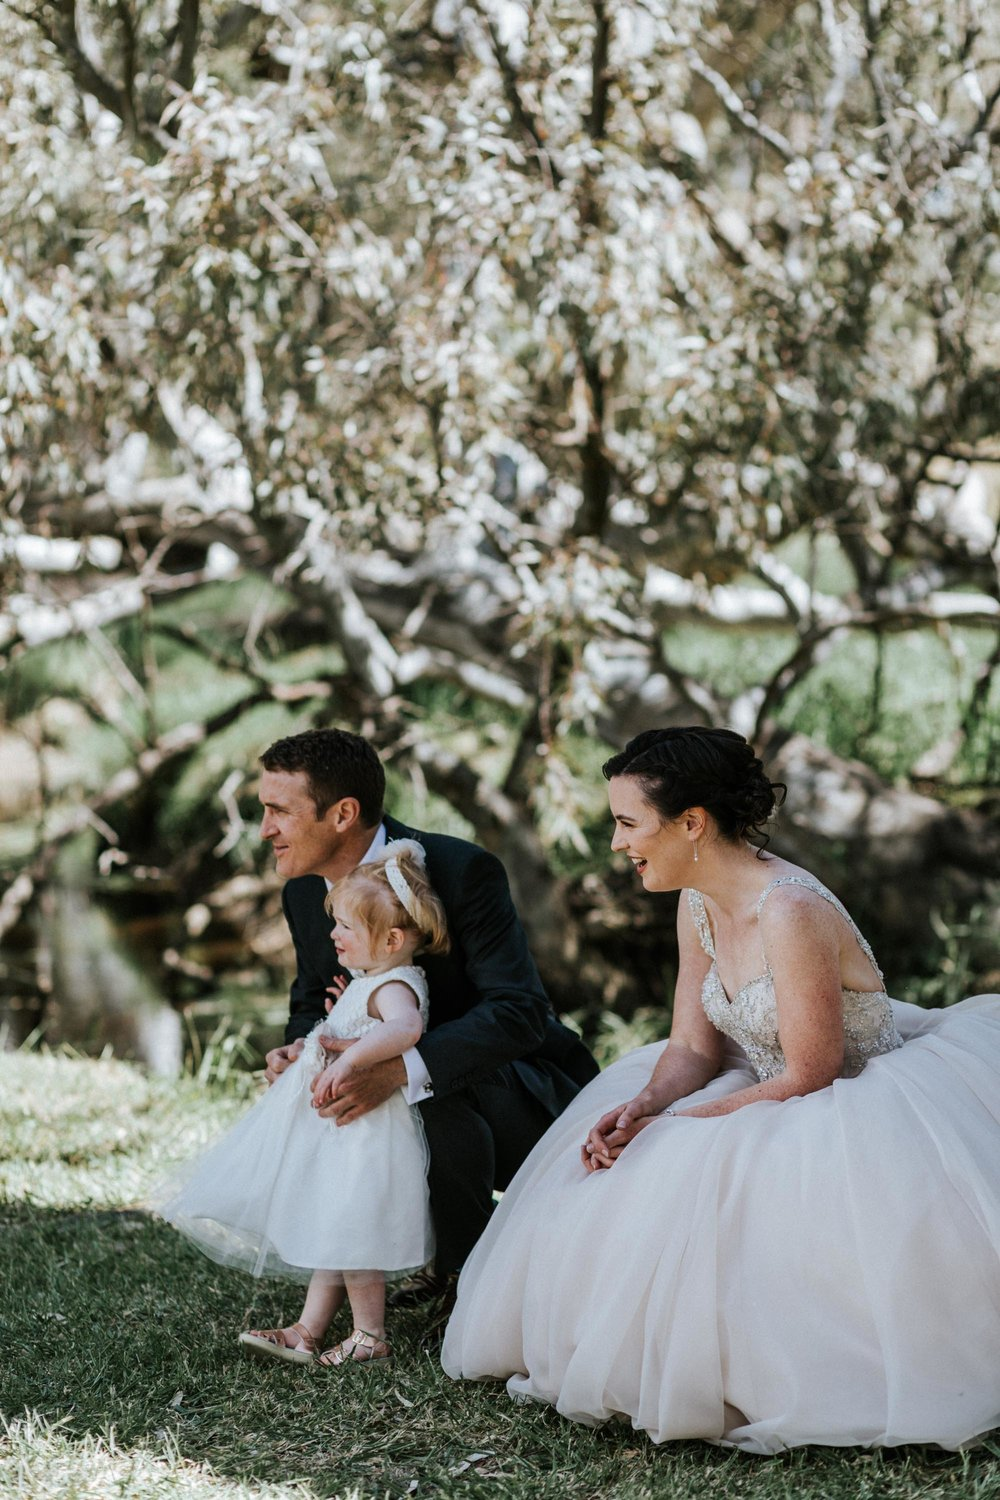 Heathcote farm wedding, Tamika + Paul